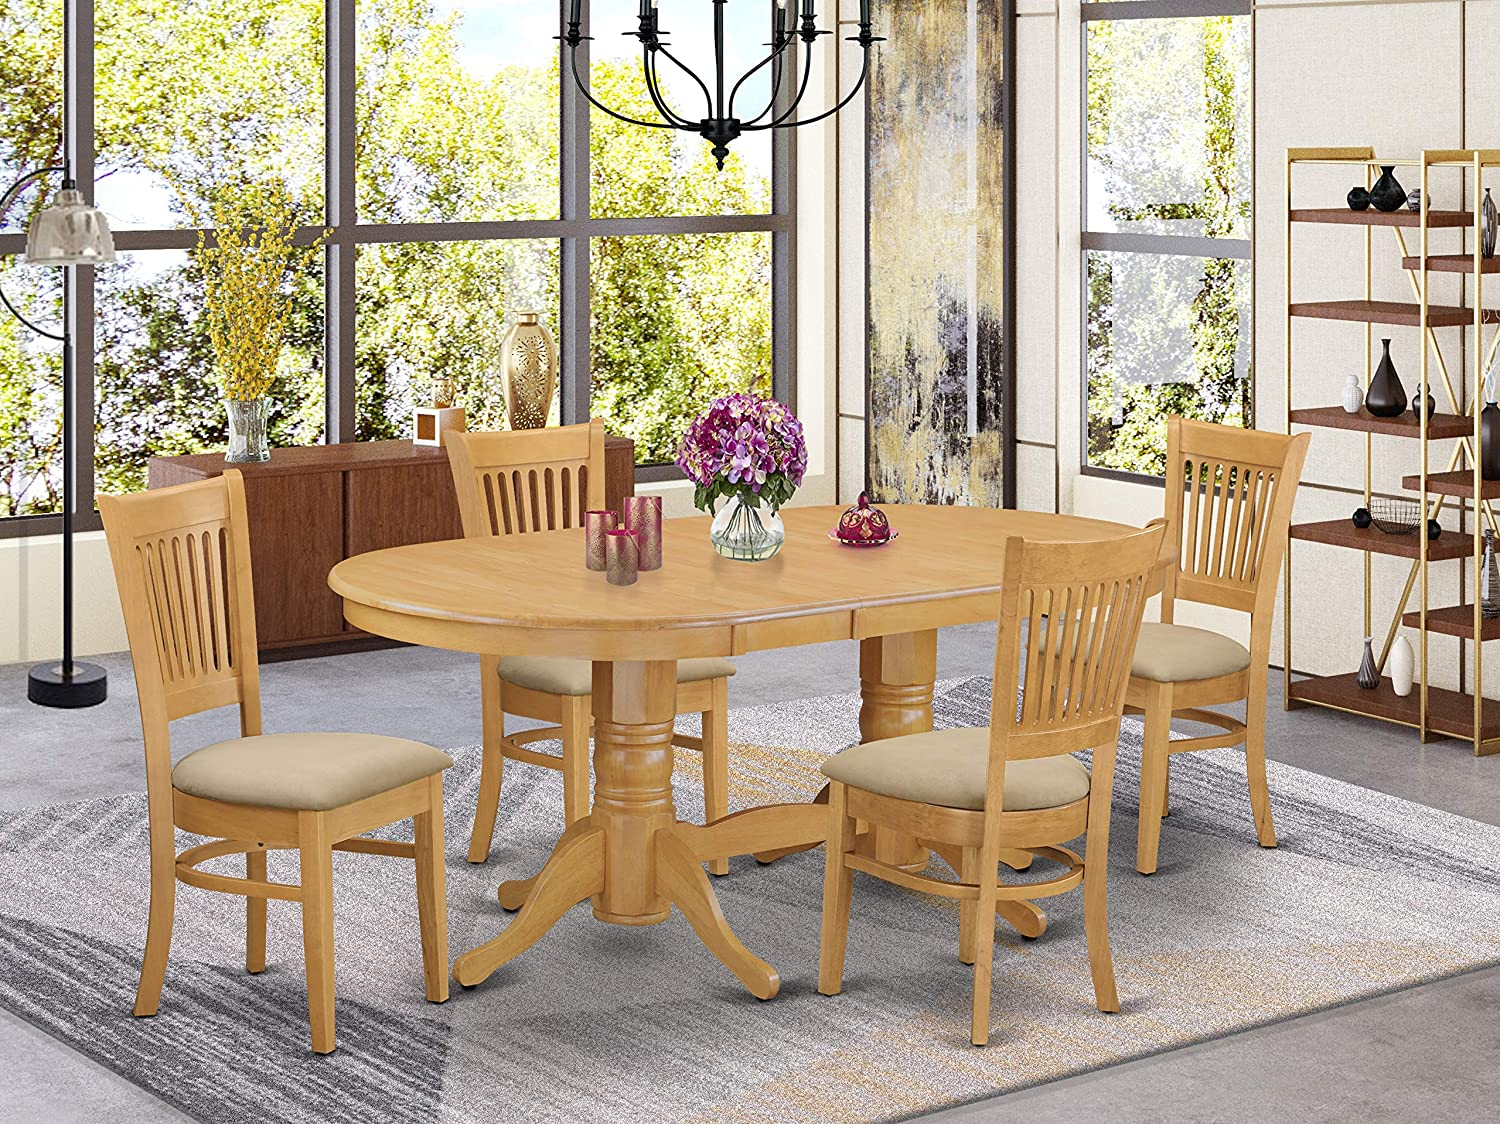 10 Pc Dining room set Table with Leaf and 10 Chairs for Dining